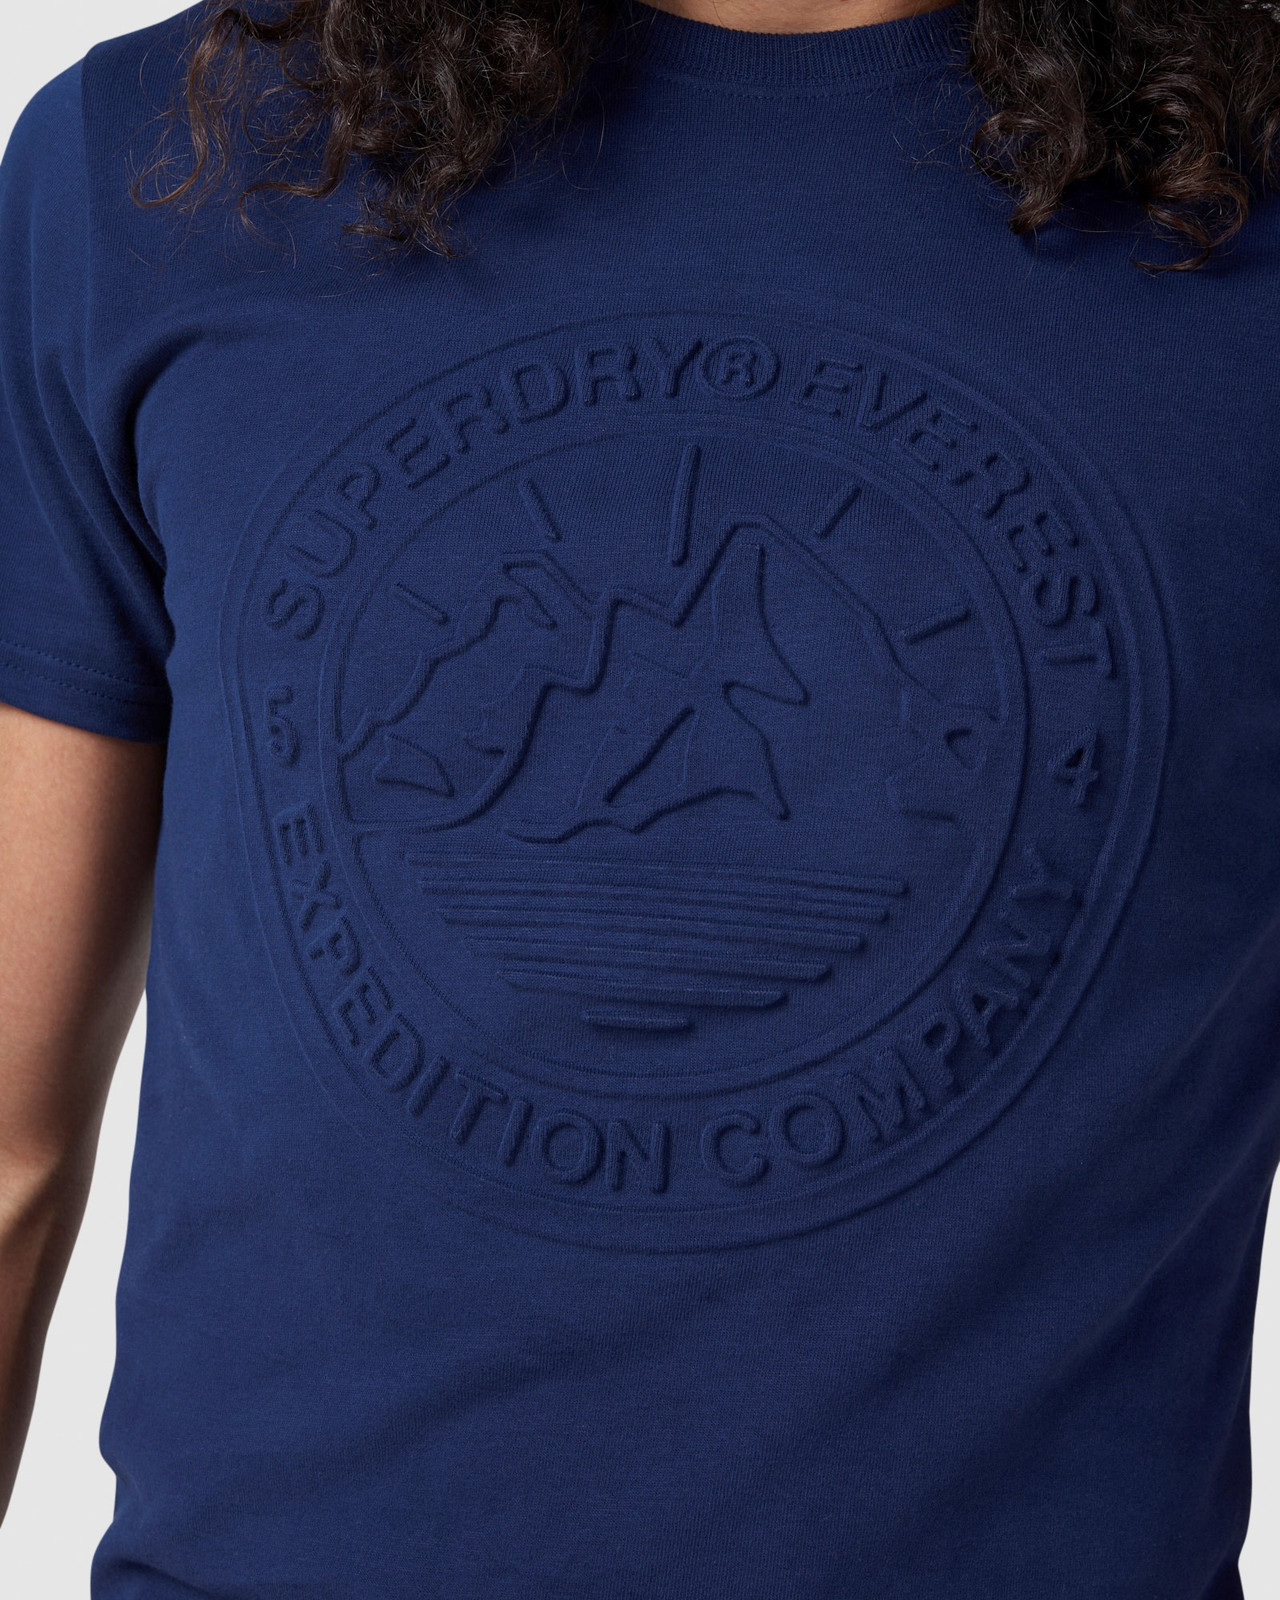 Superdry Mens EVEREST TEE Navy Printed T Shirts 5